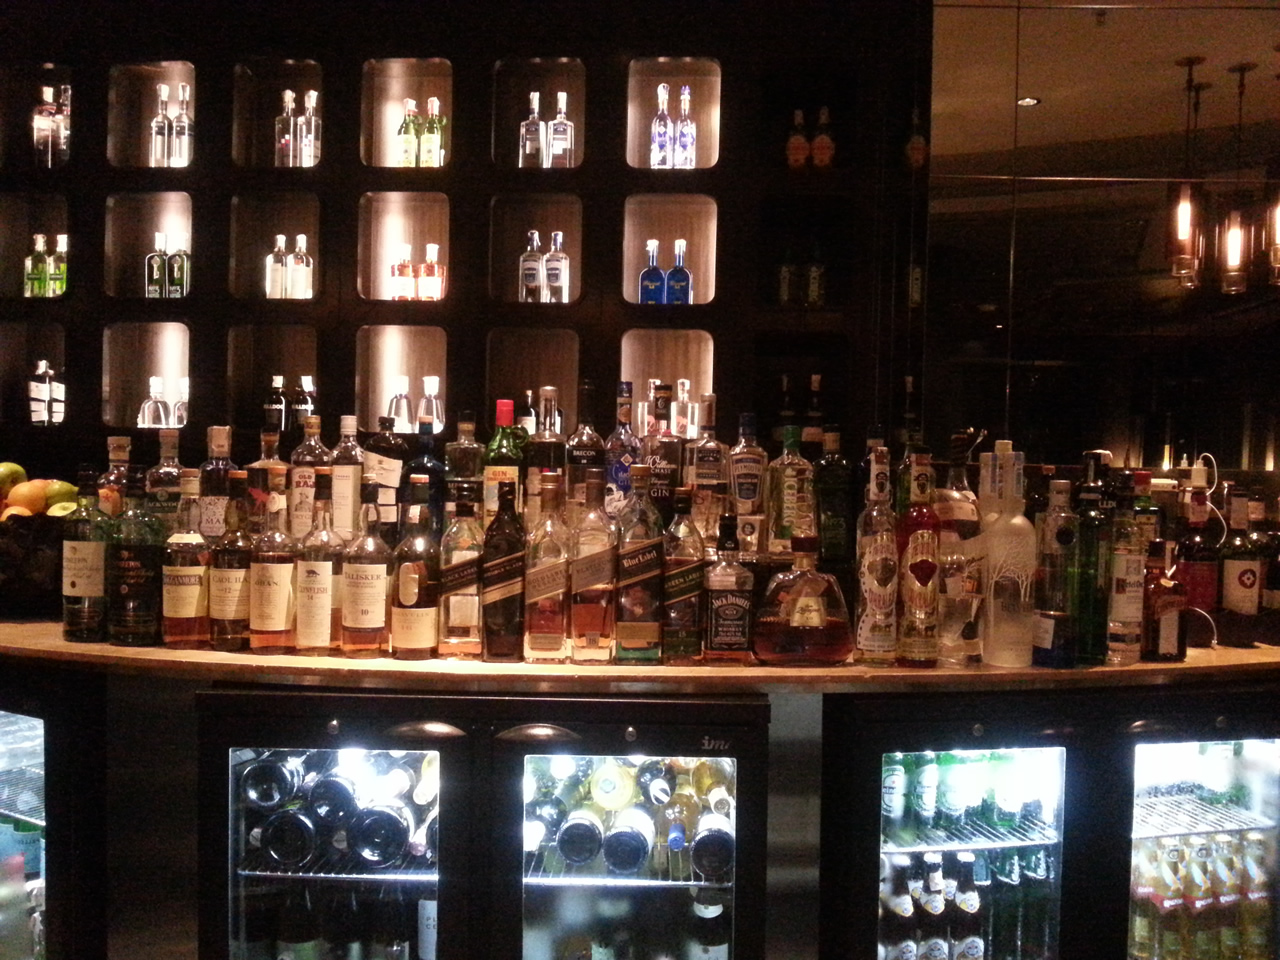 The Arola Bar: A wide array of luxe labels to savour